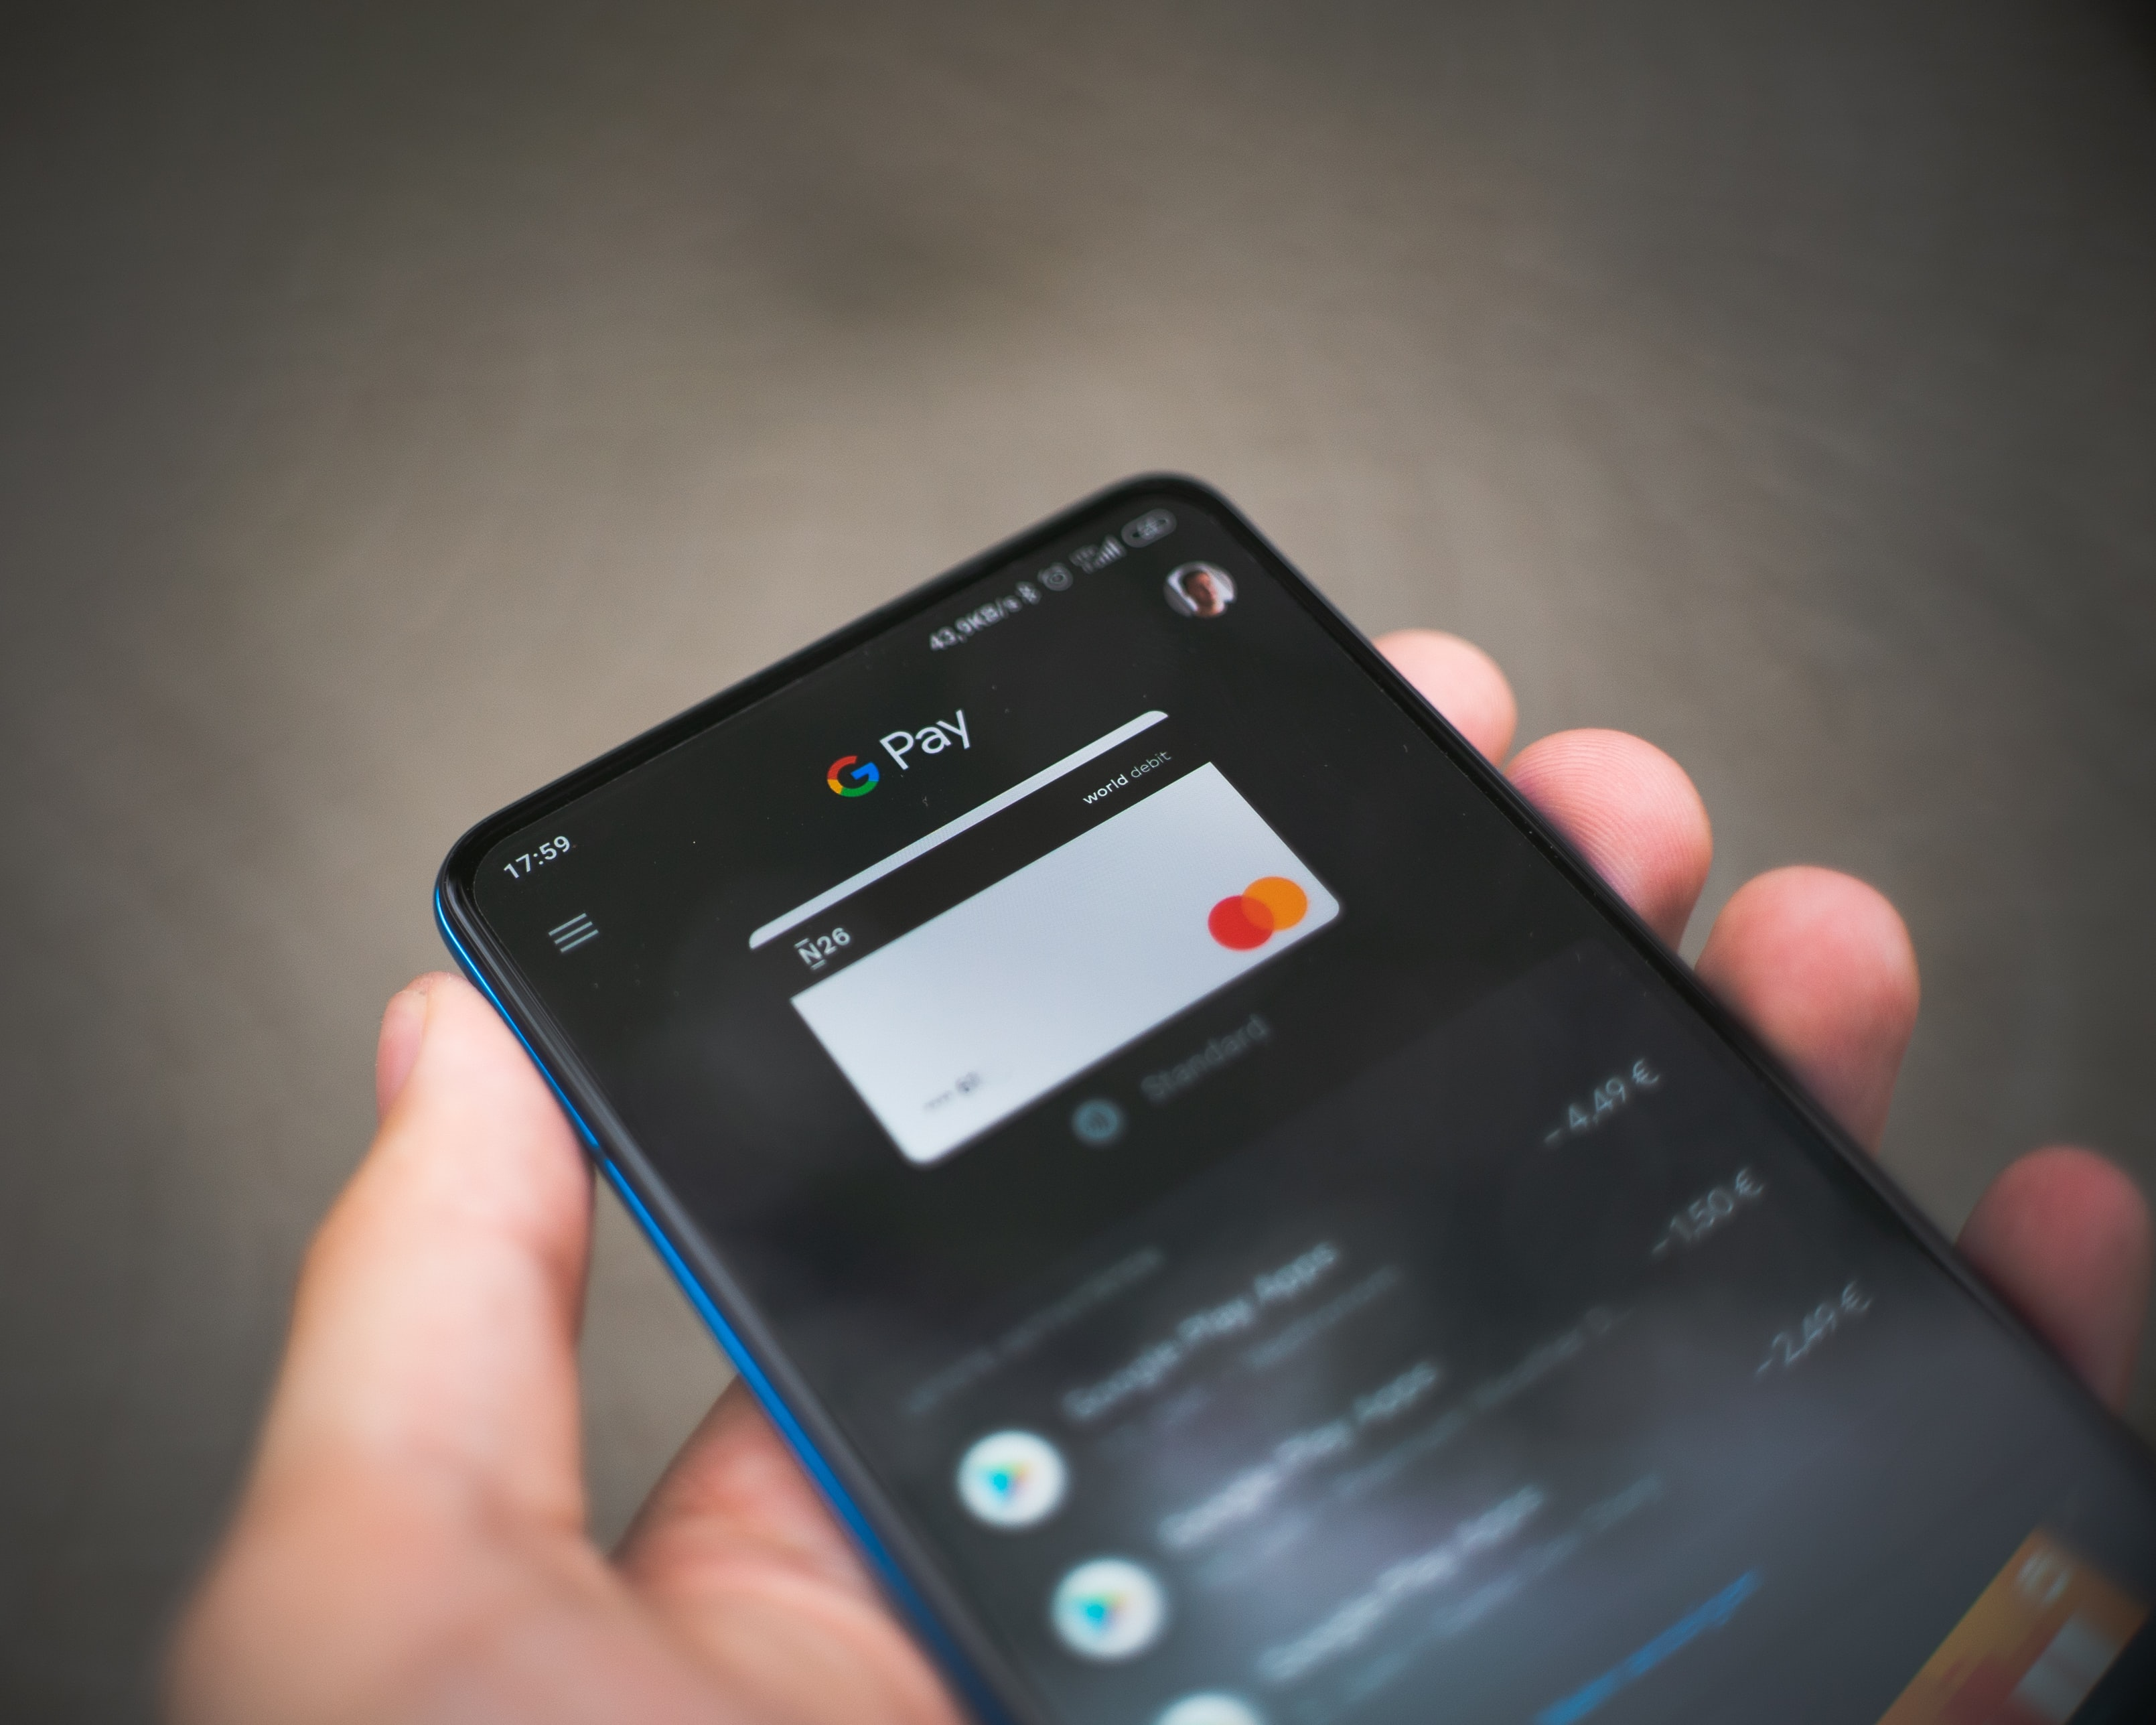 Google Pay mobile payments